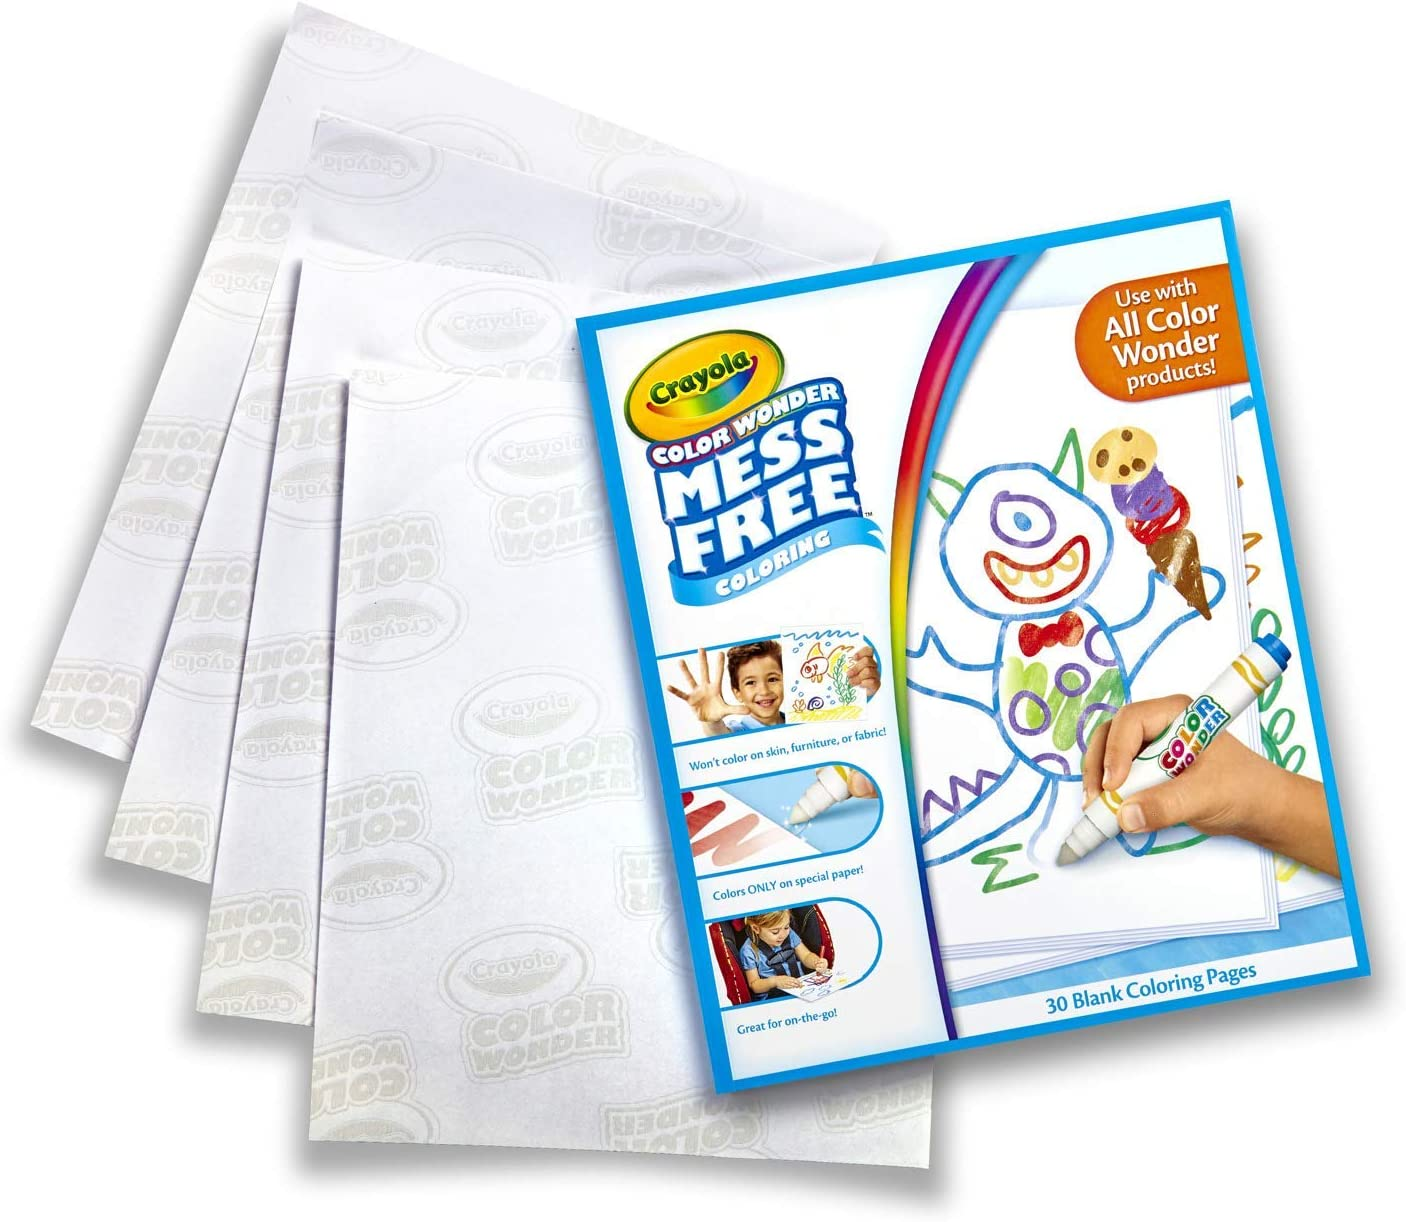 Amazon Com Crayola Color Wonder Mess Free Coloring Blank Coloring 30 Pages Toys Games